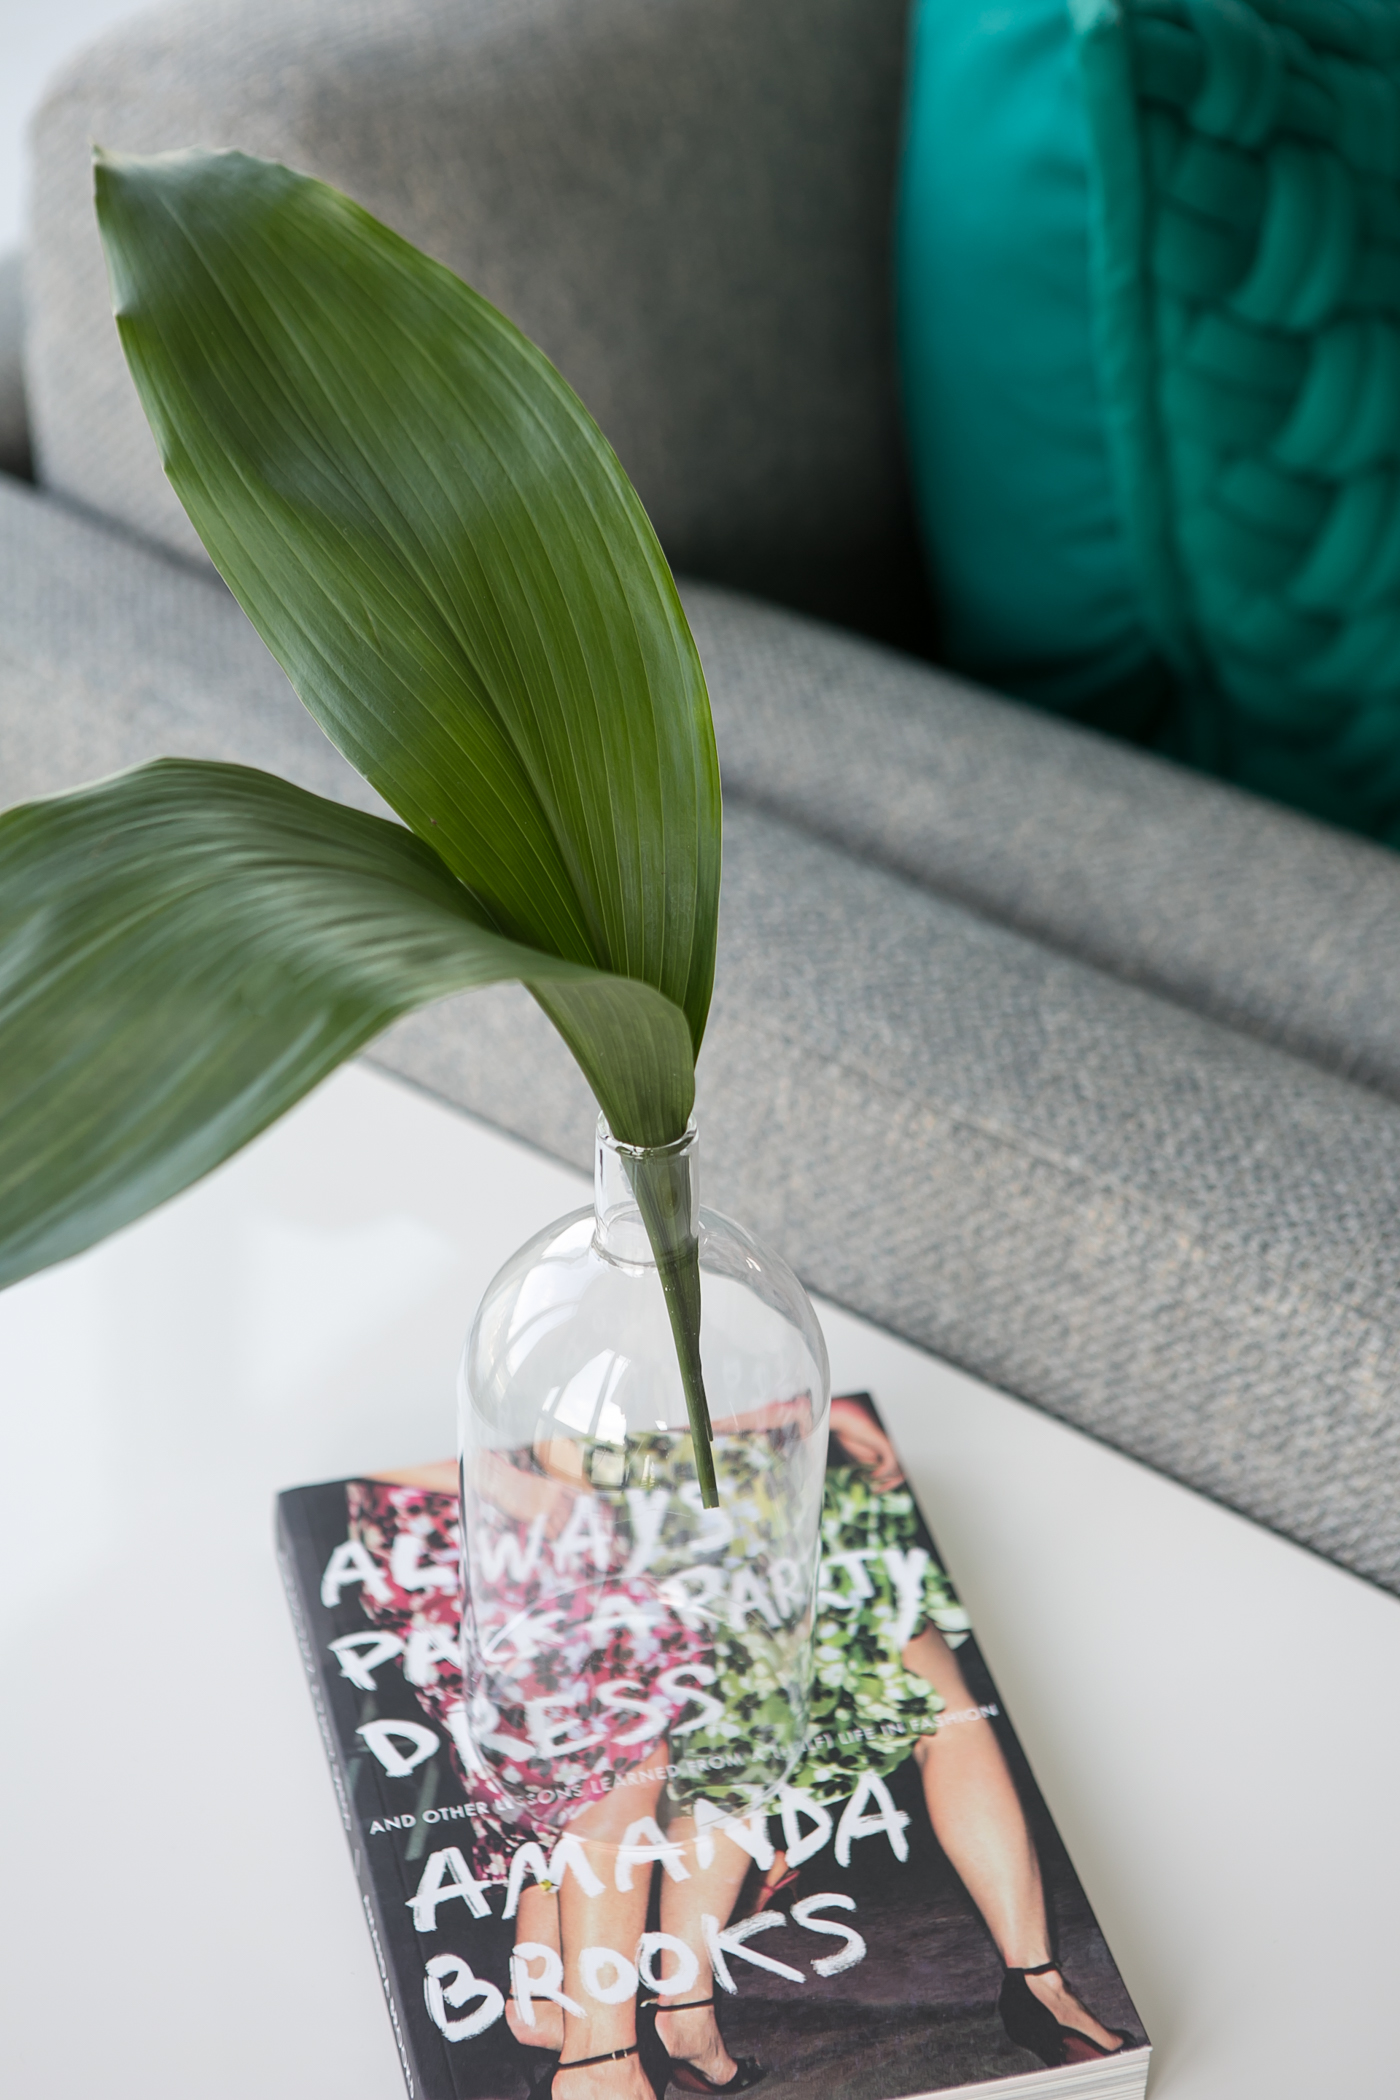 NYC Interior Designer-Decorating with Plants